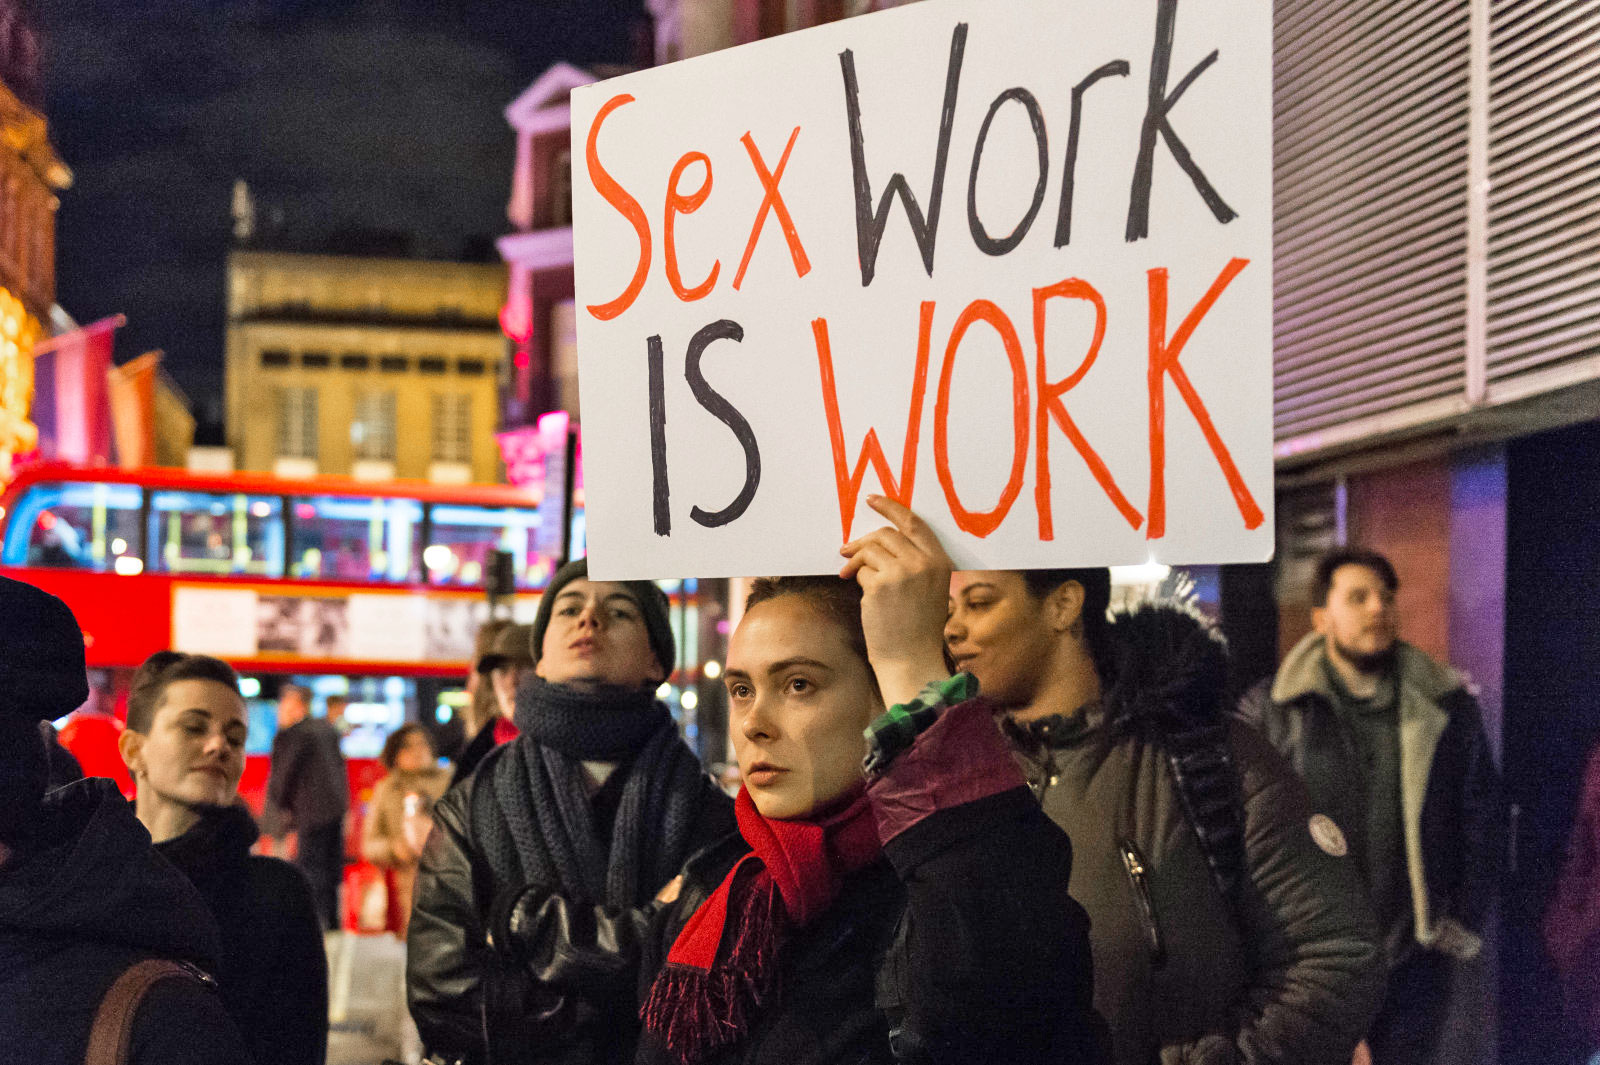 sex workers Relationships sex kate iselin writes: why i only date men who visit sex workers kate iselin has one very important rule when it comes to the men she dates and to some it may come as a surprise.